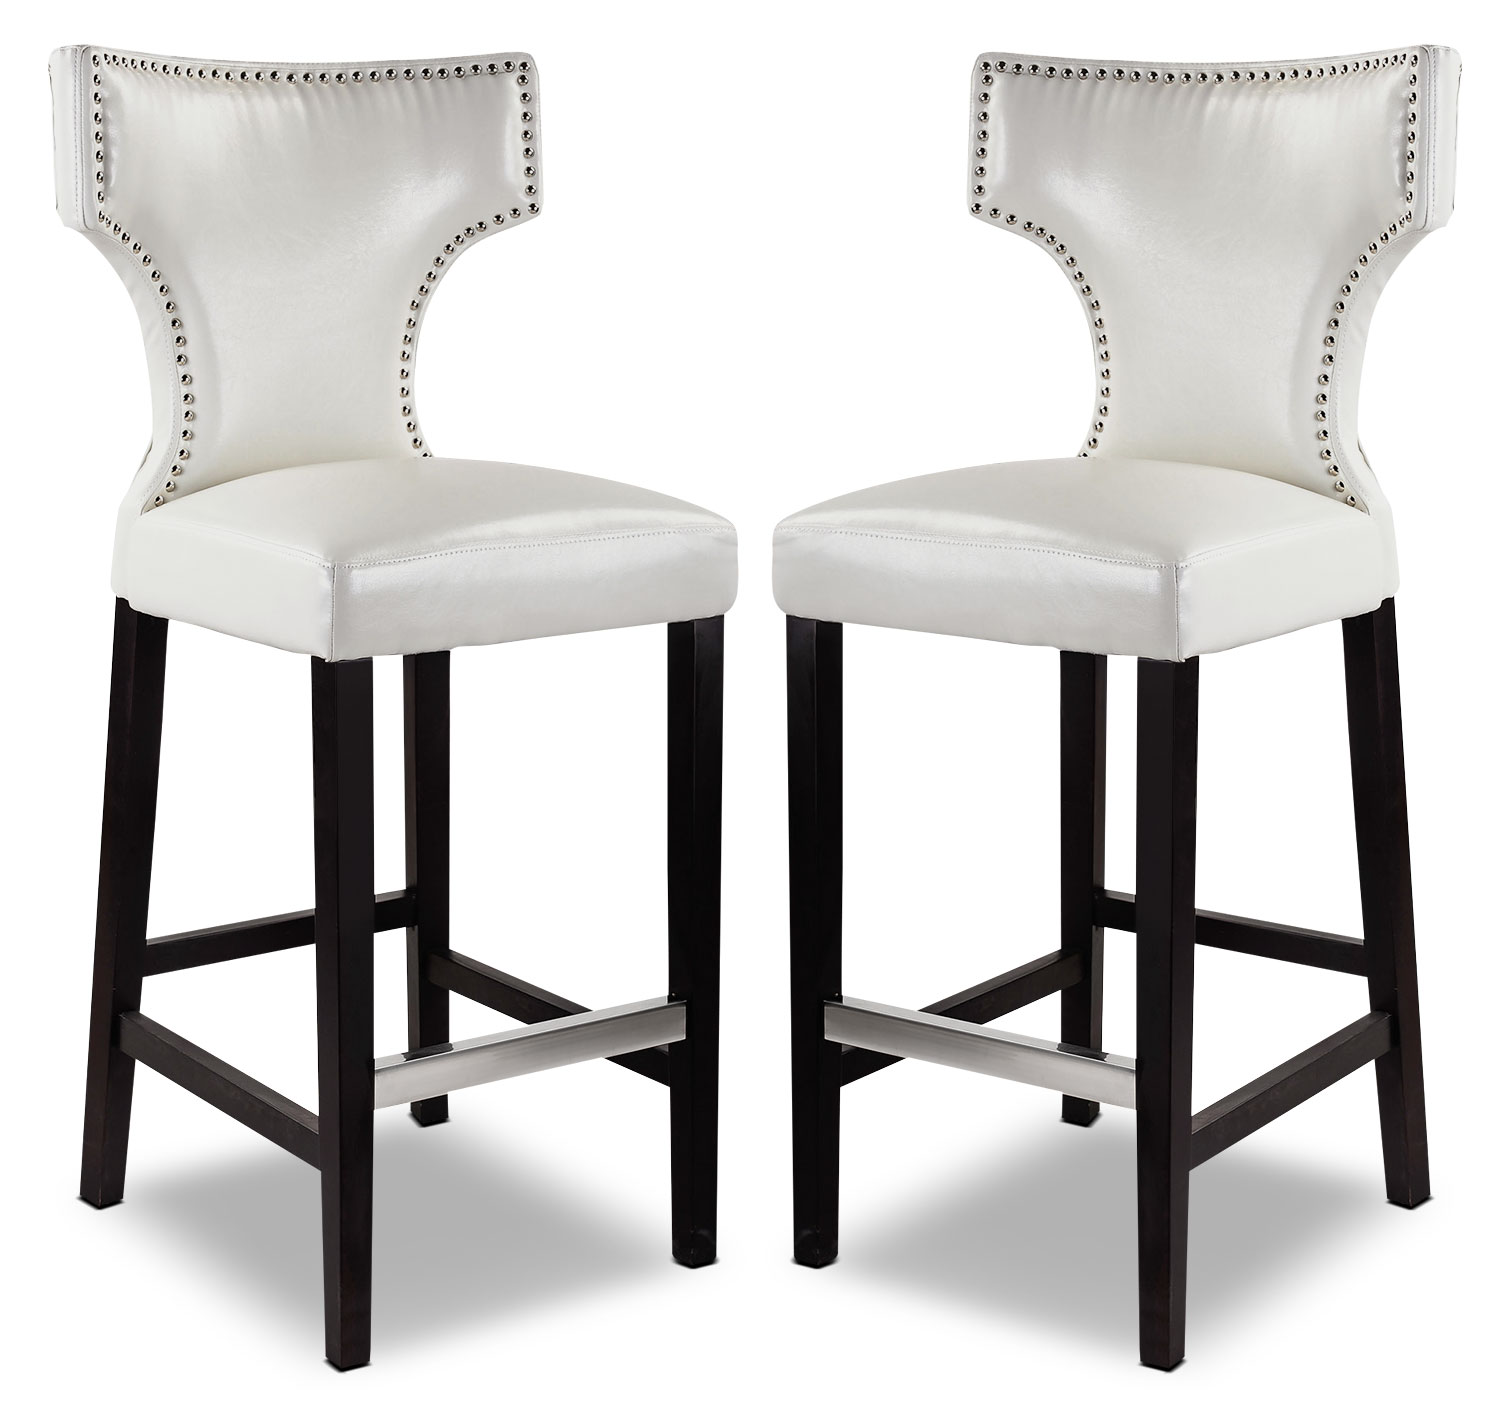 Kings Bar Stool with Metal Studs, Set of 2 – White